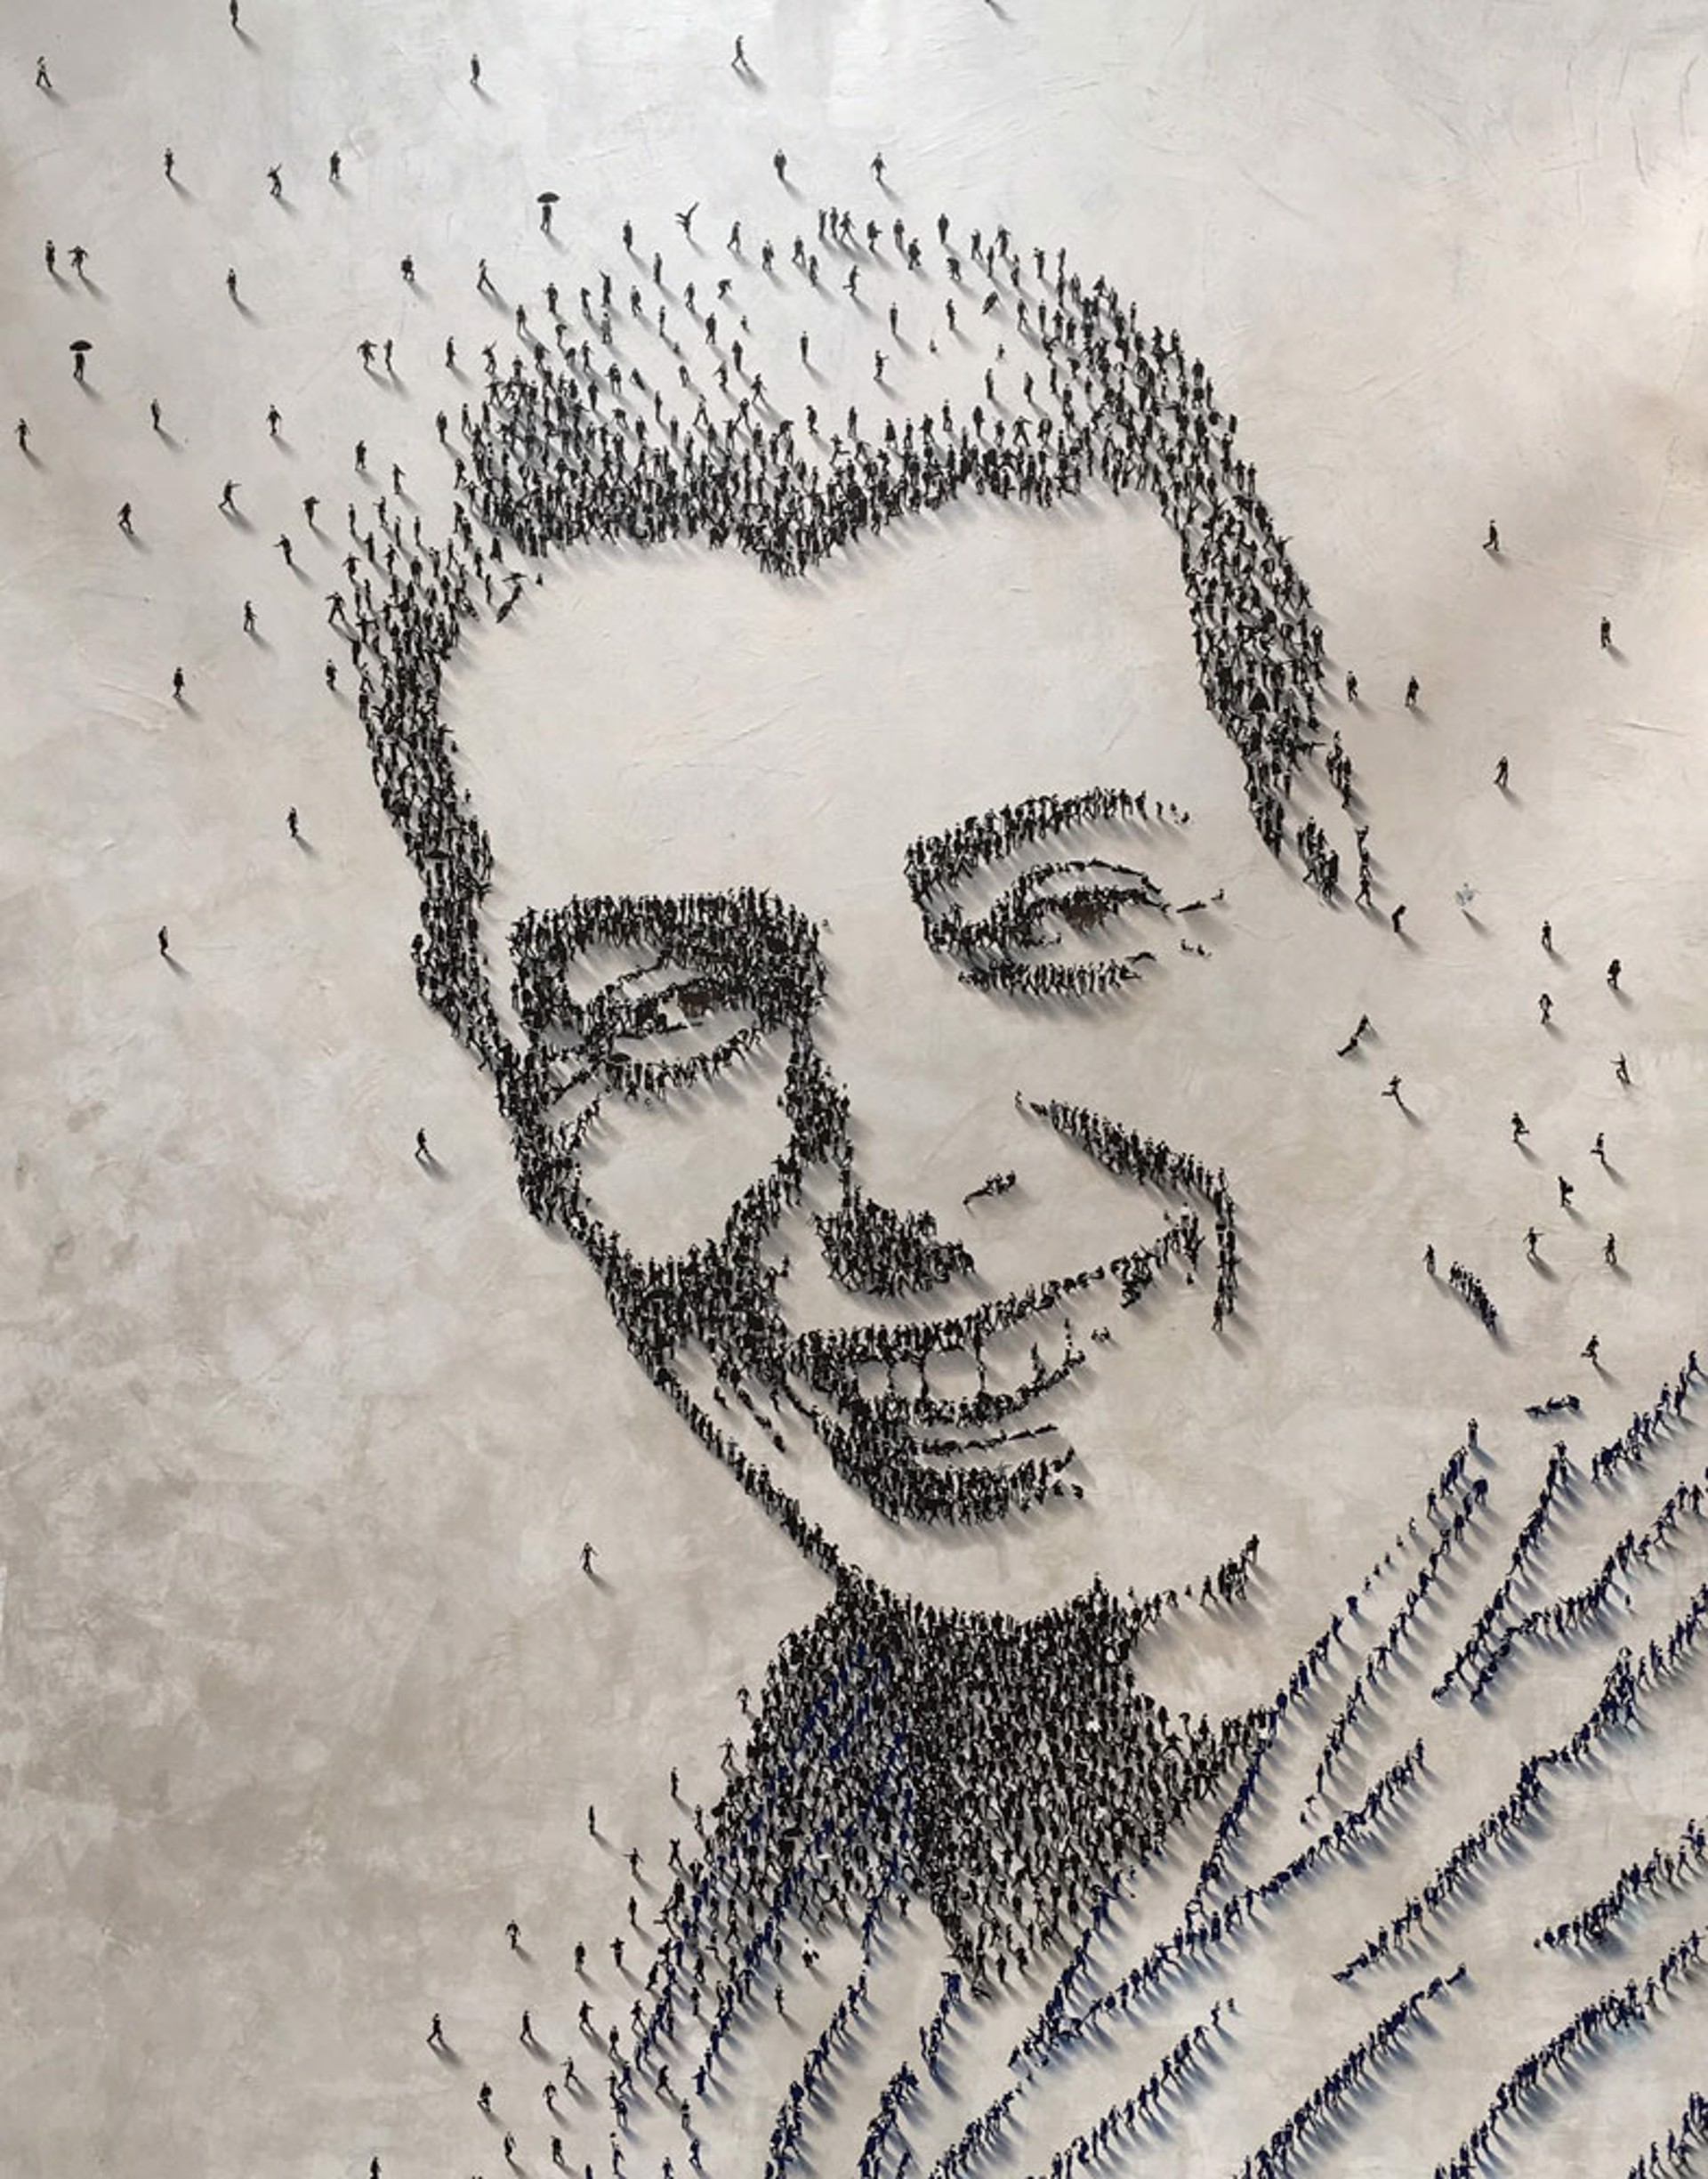 DiMaggio (SOLD) by Craig Alan, Populus Commission